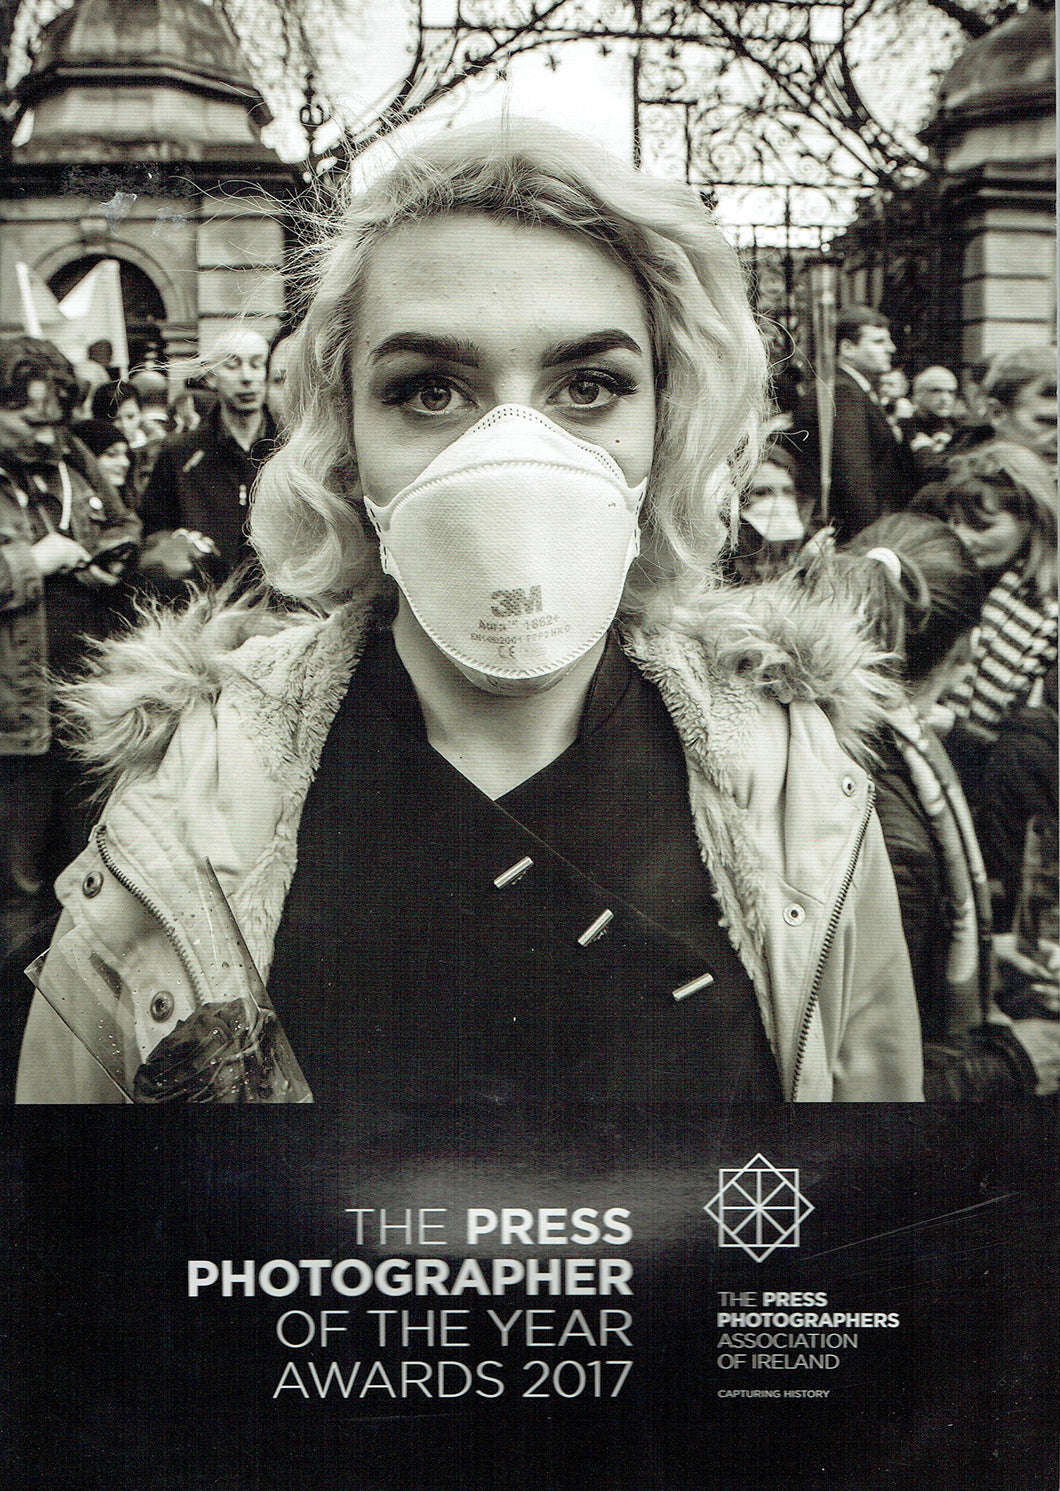 The Press Photographer of the Year Awards 2017